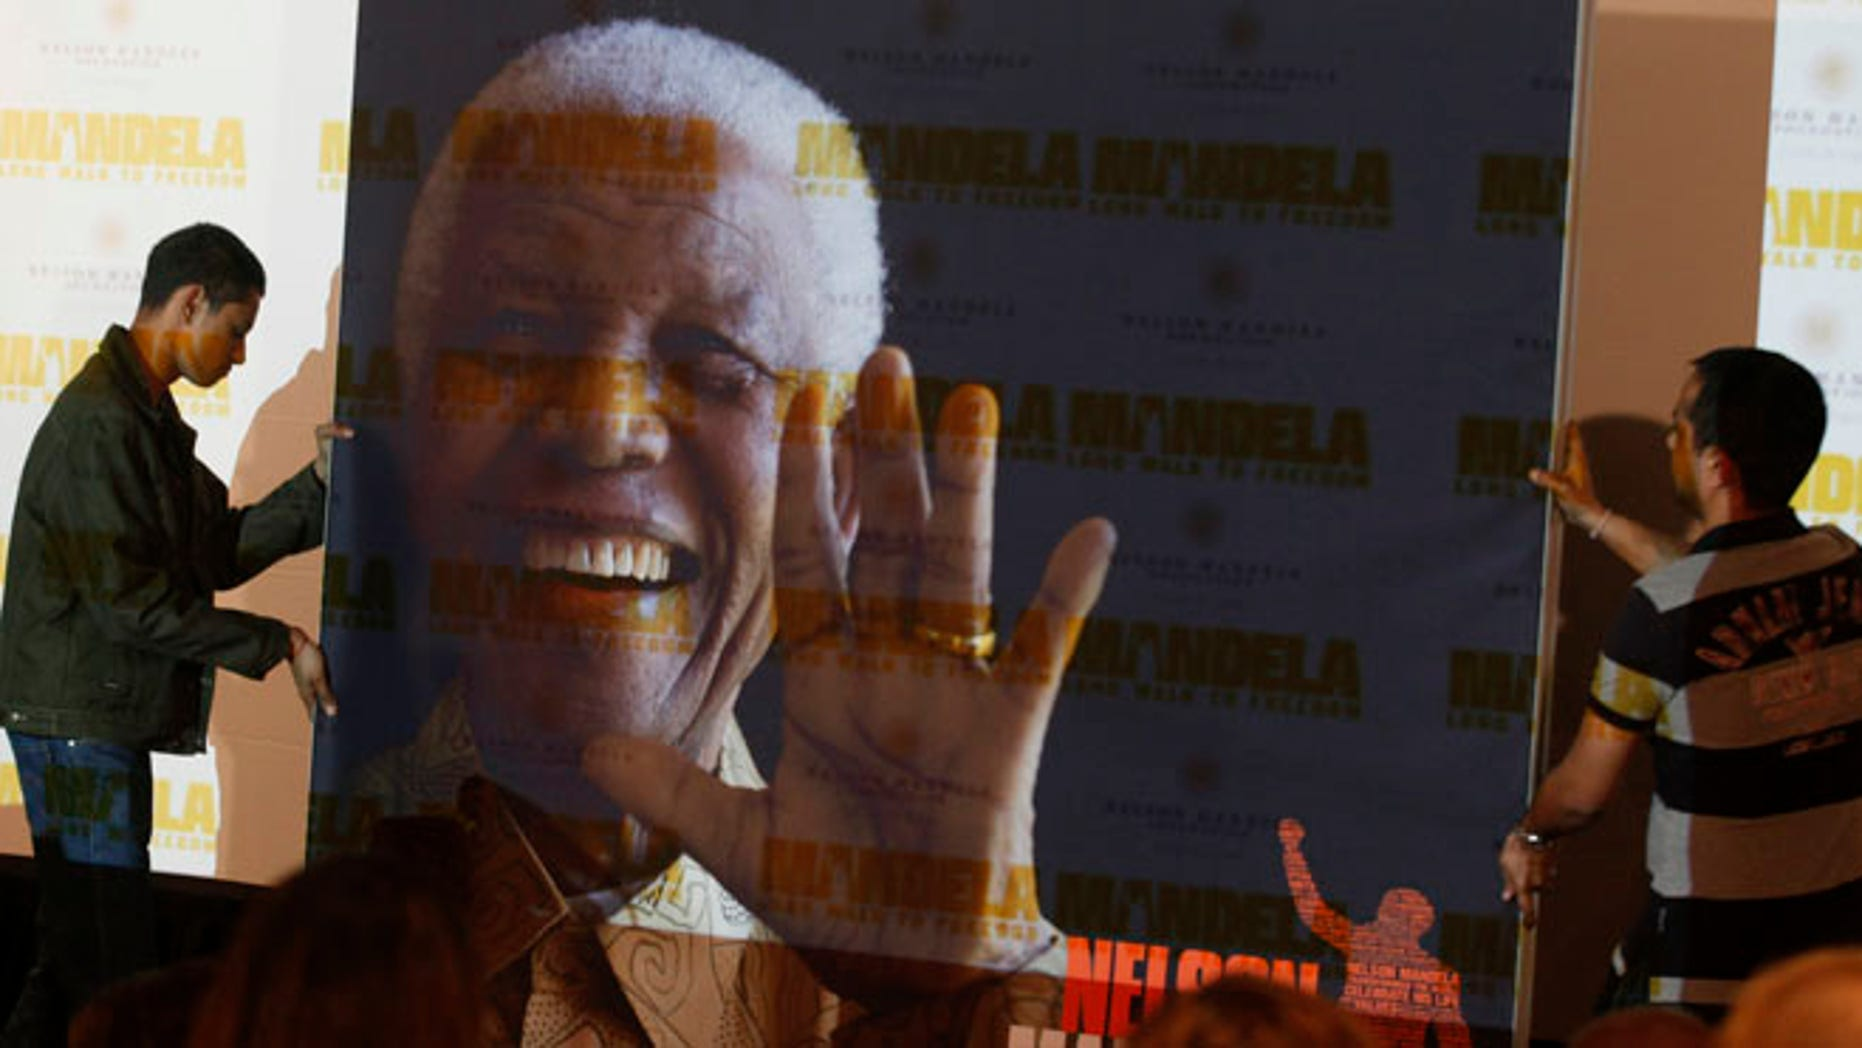 """Nov. 2, 2013: In this file photo, a giant poster of Nelson Mandela is moved to center stage at a news conference held to promote the newly released film """"Mandela: Long Walk To Freedom,"""" in Johannesburg."""